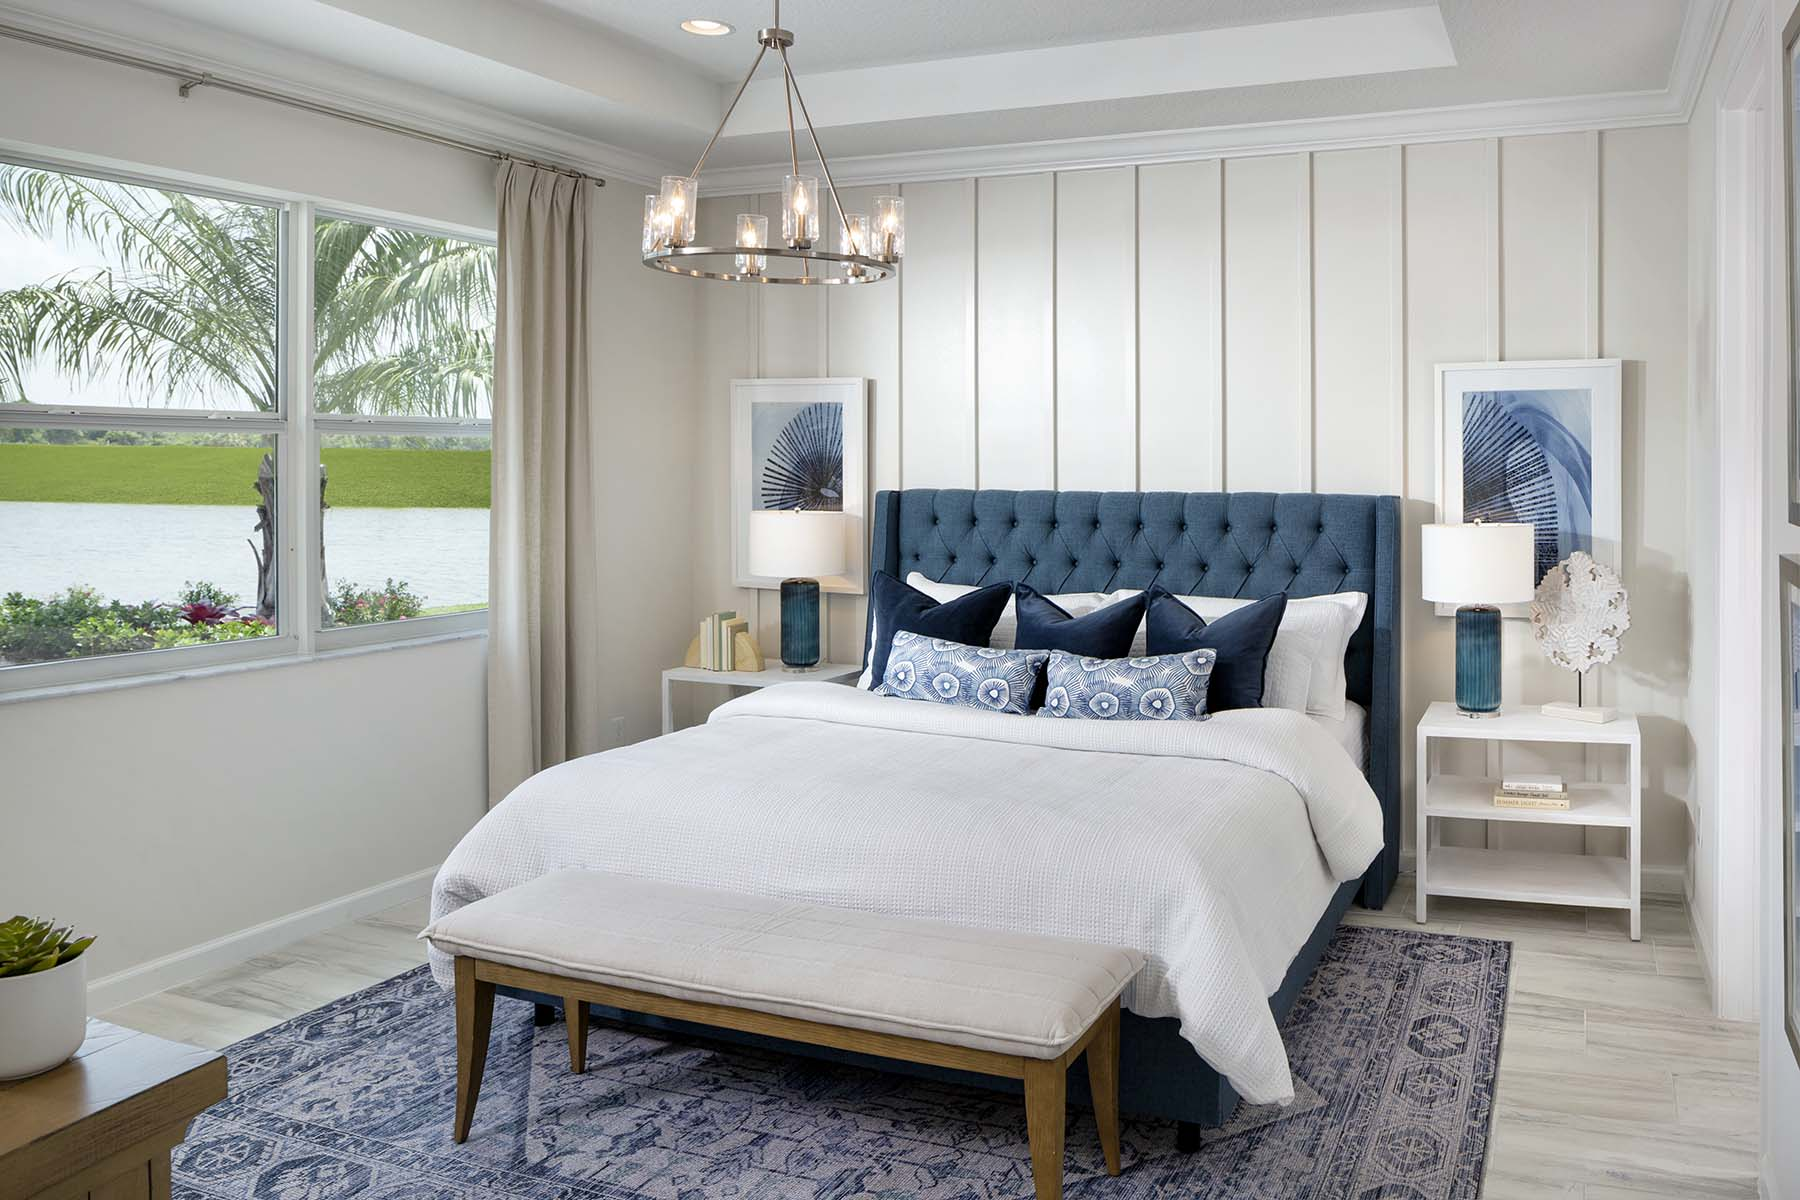 Aspen Plan Bedroom at Tradition - Manderlie in Port St. Lucie Florida by Mattamy Homes